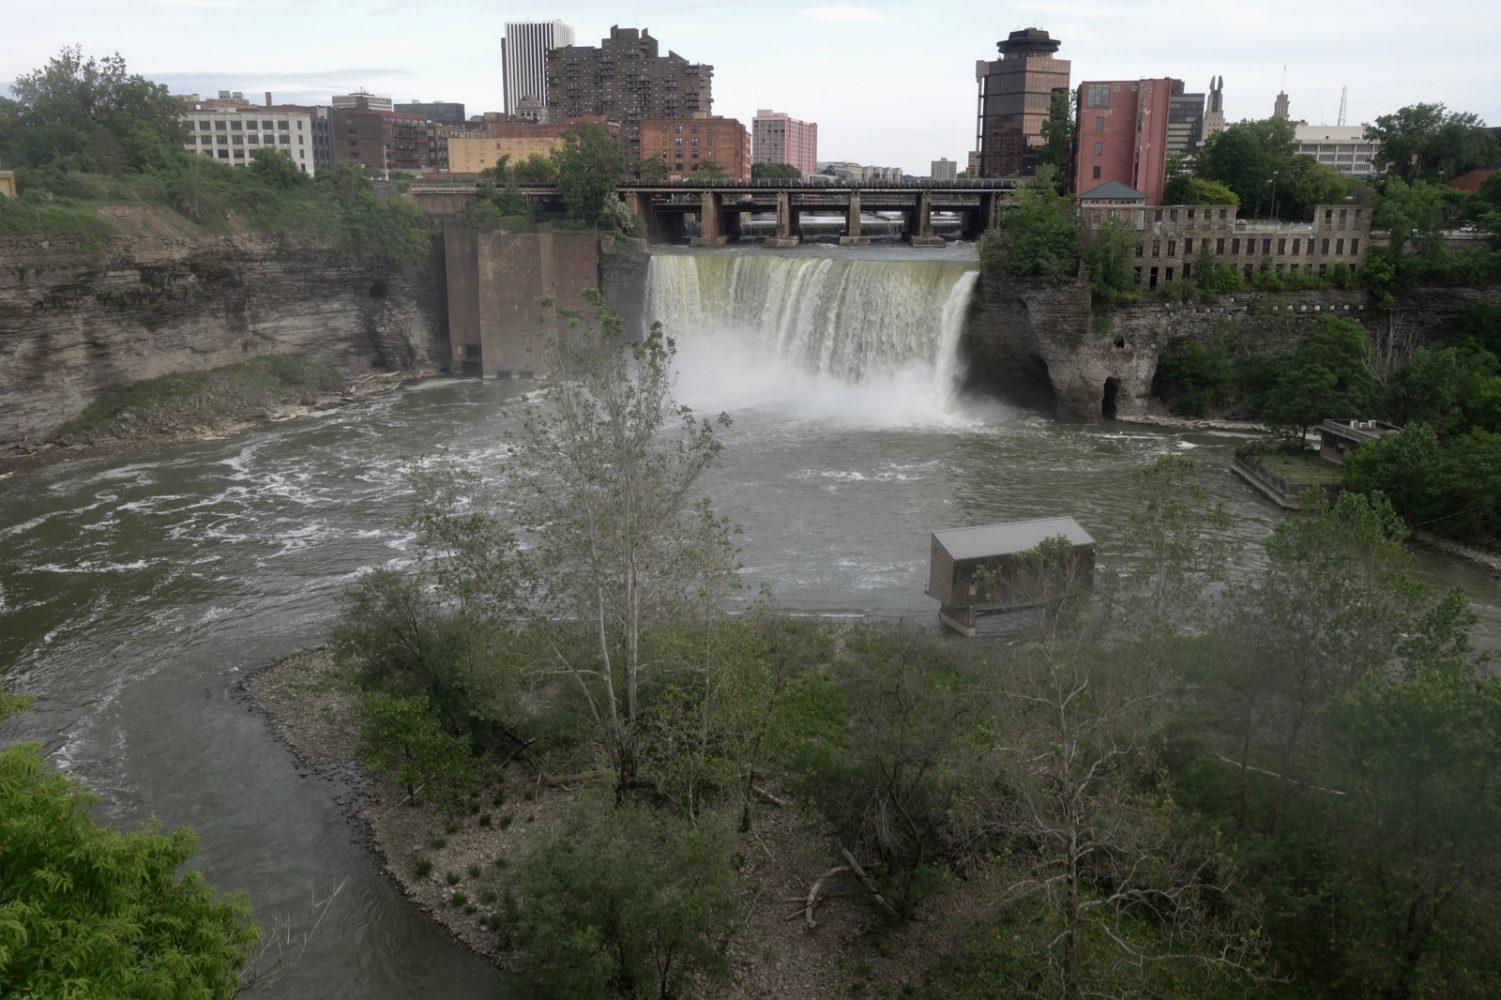 View of High Falls from Genesee Brewery on Saint Paul Boulevard in Rochester, New York